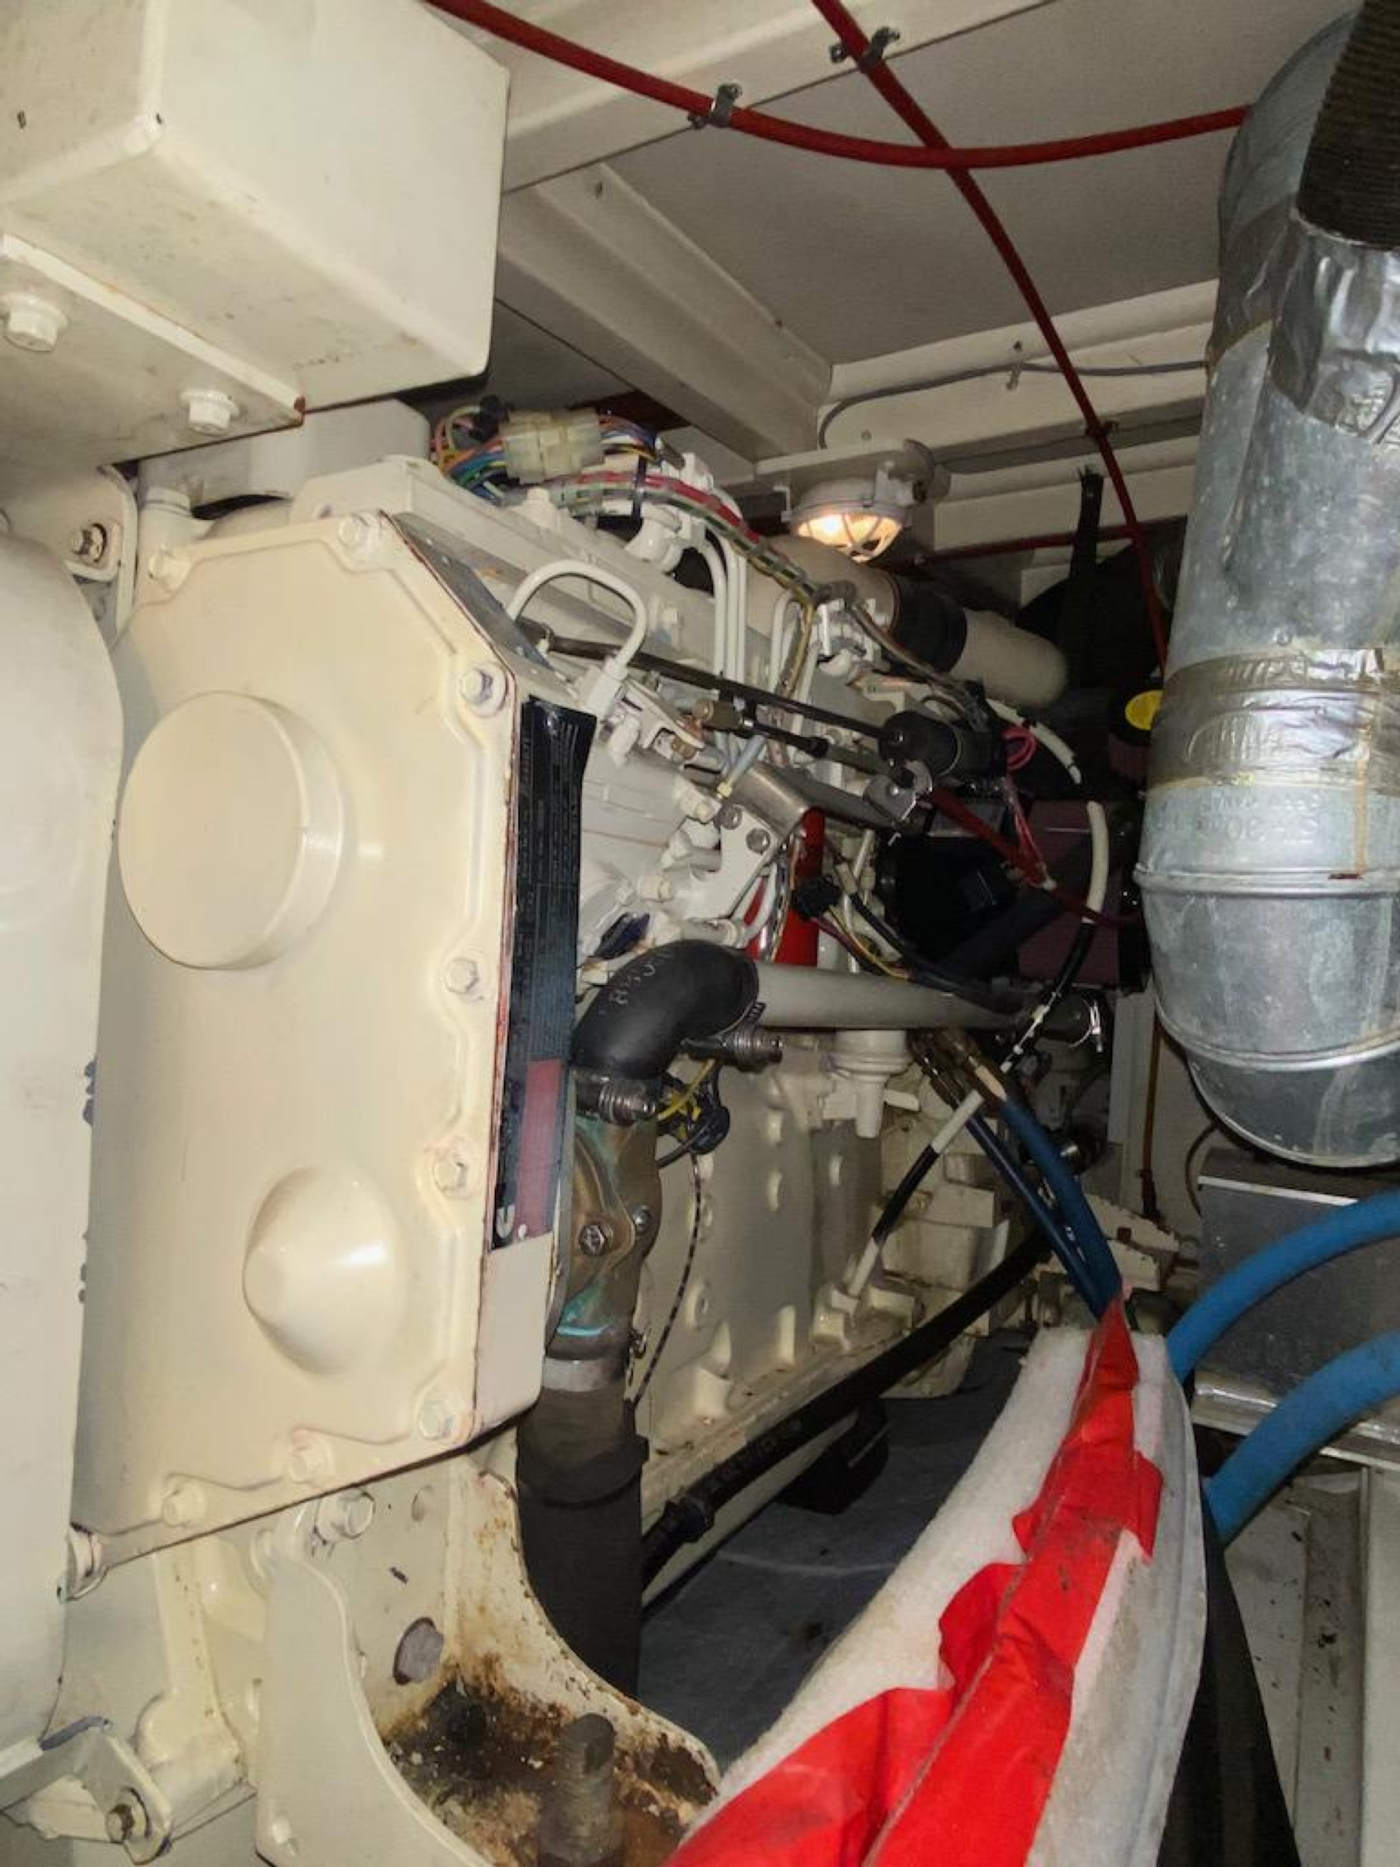 1998 Grand Banks 42 Classic, Port main outboard